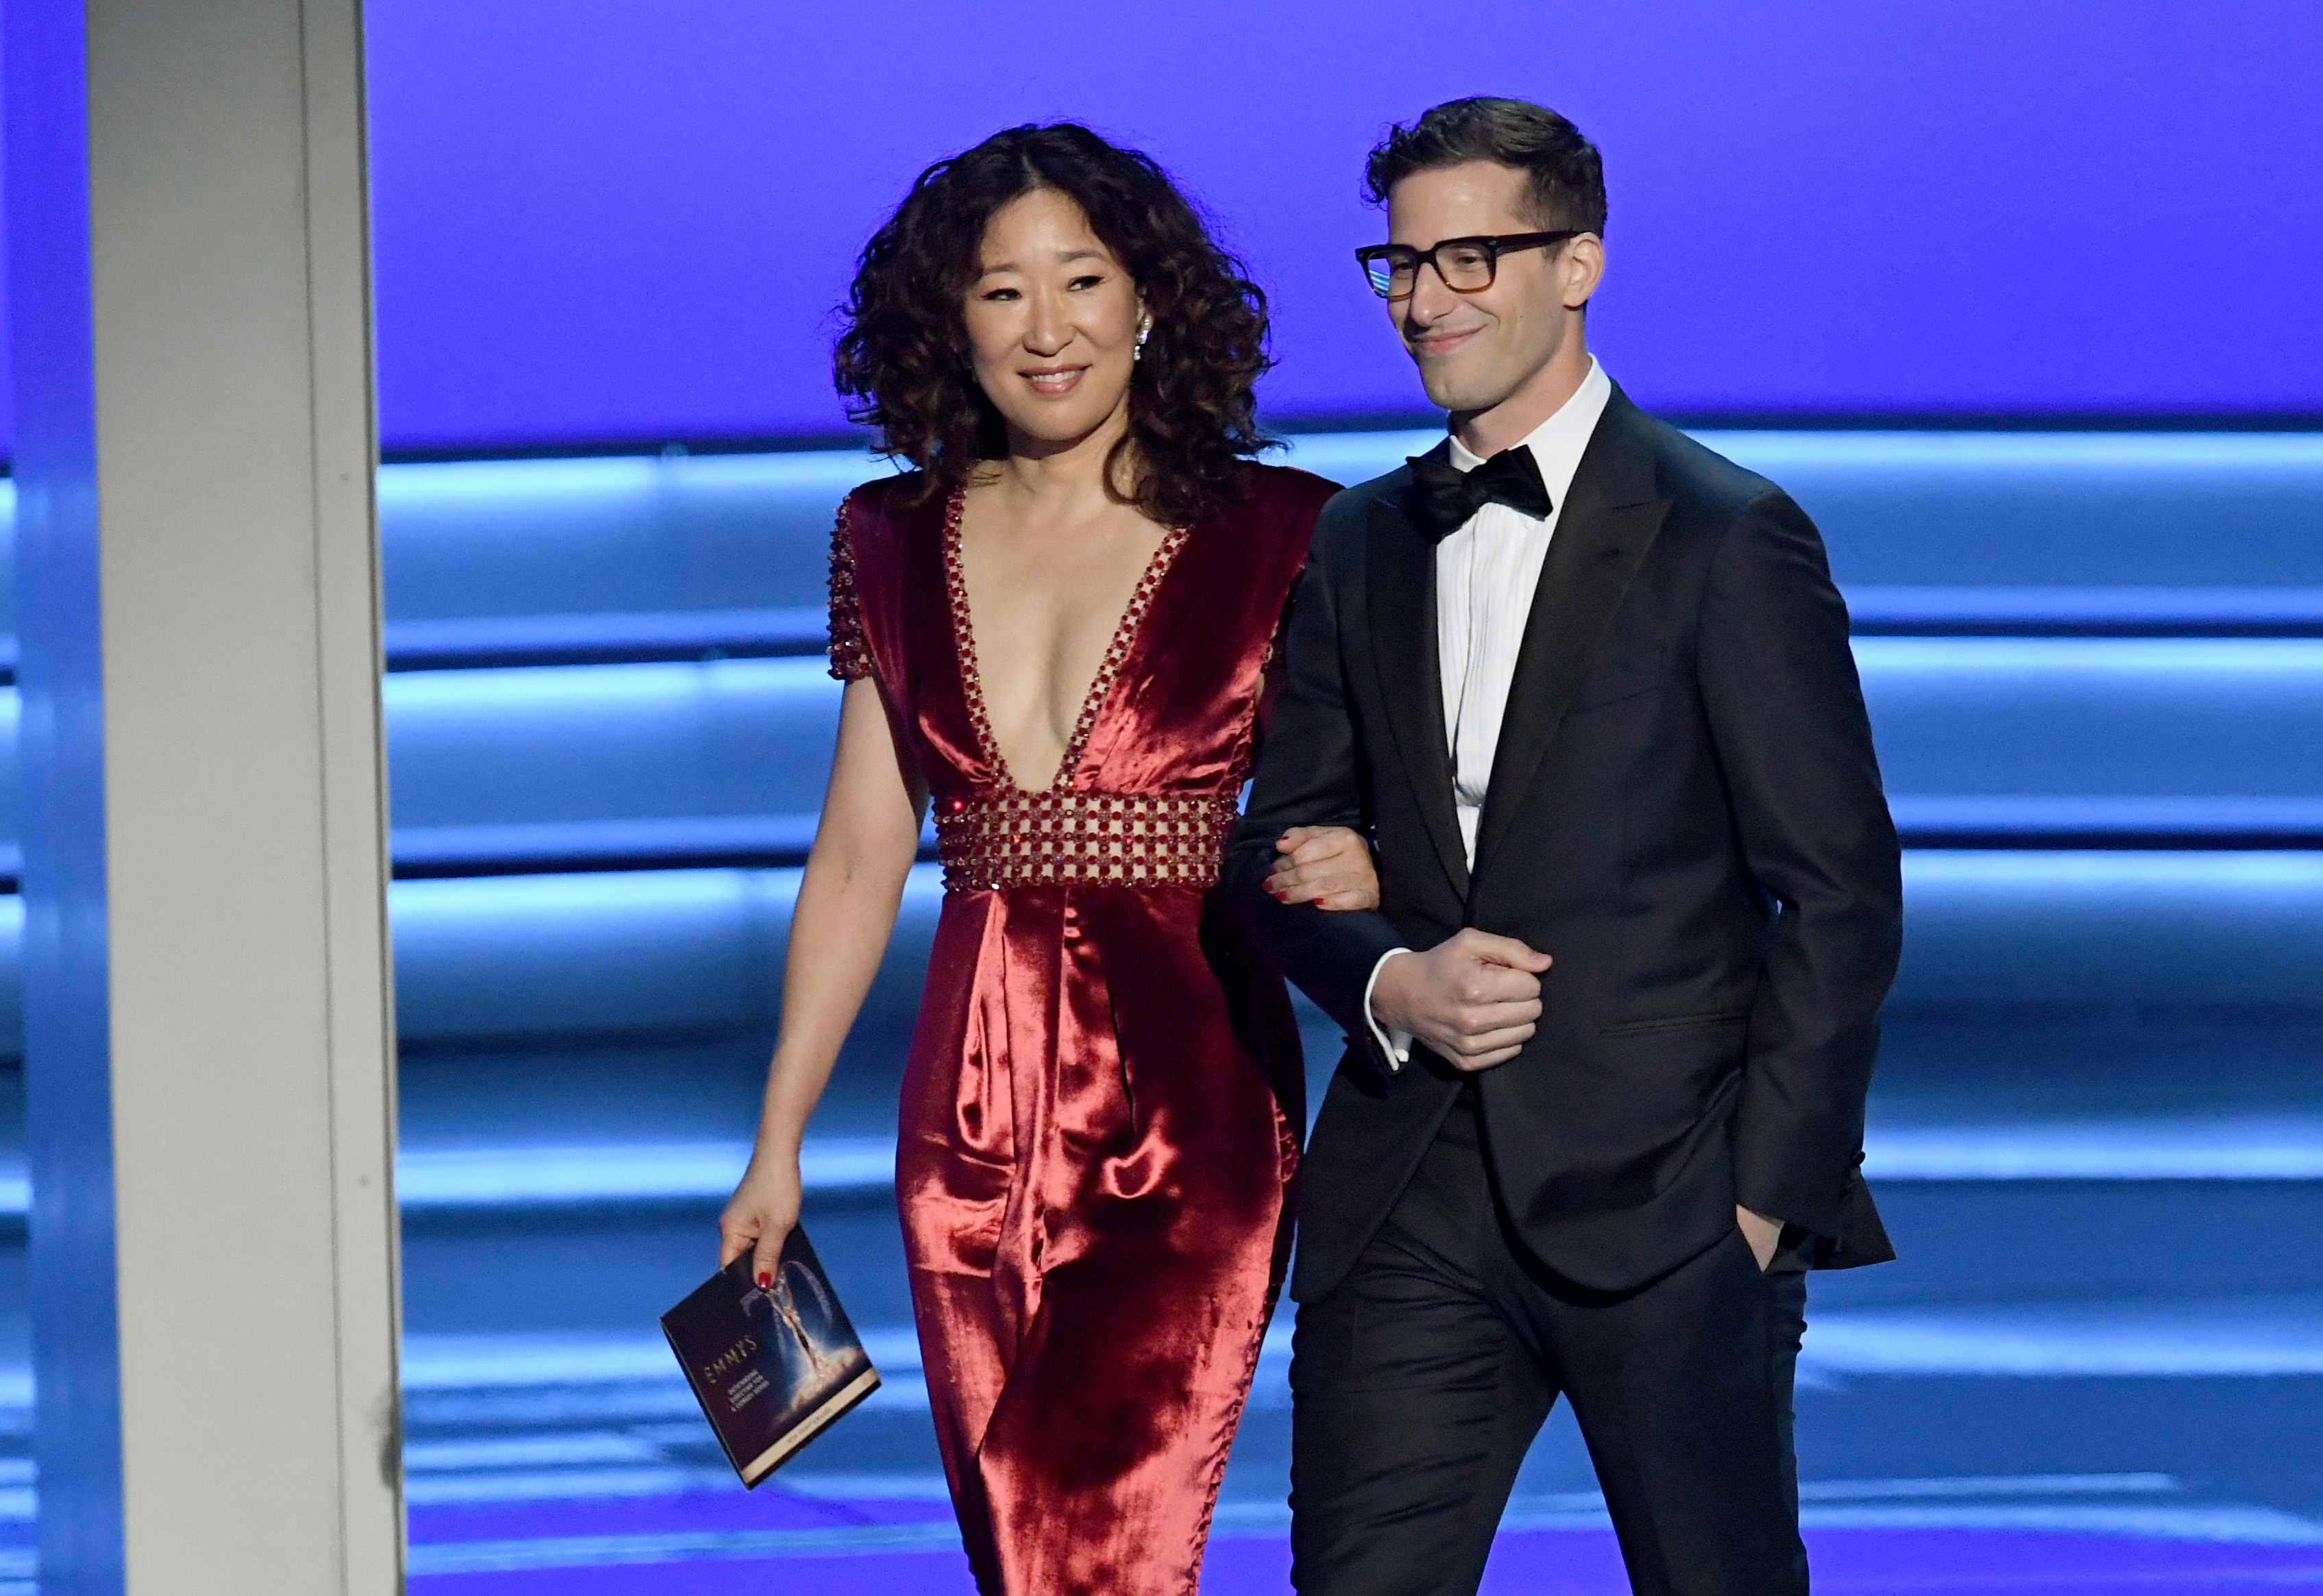 Sandra Oh (L) and Andy Samberg walk onstage during the 70th Emmy Awards at Microsoft Theater on September 17, 2018 in Los Angeles, California.